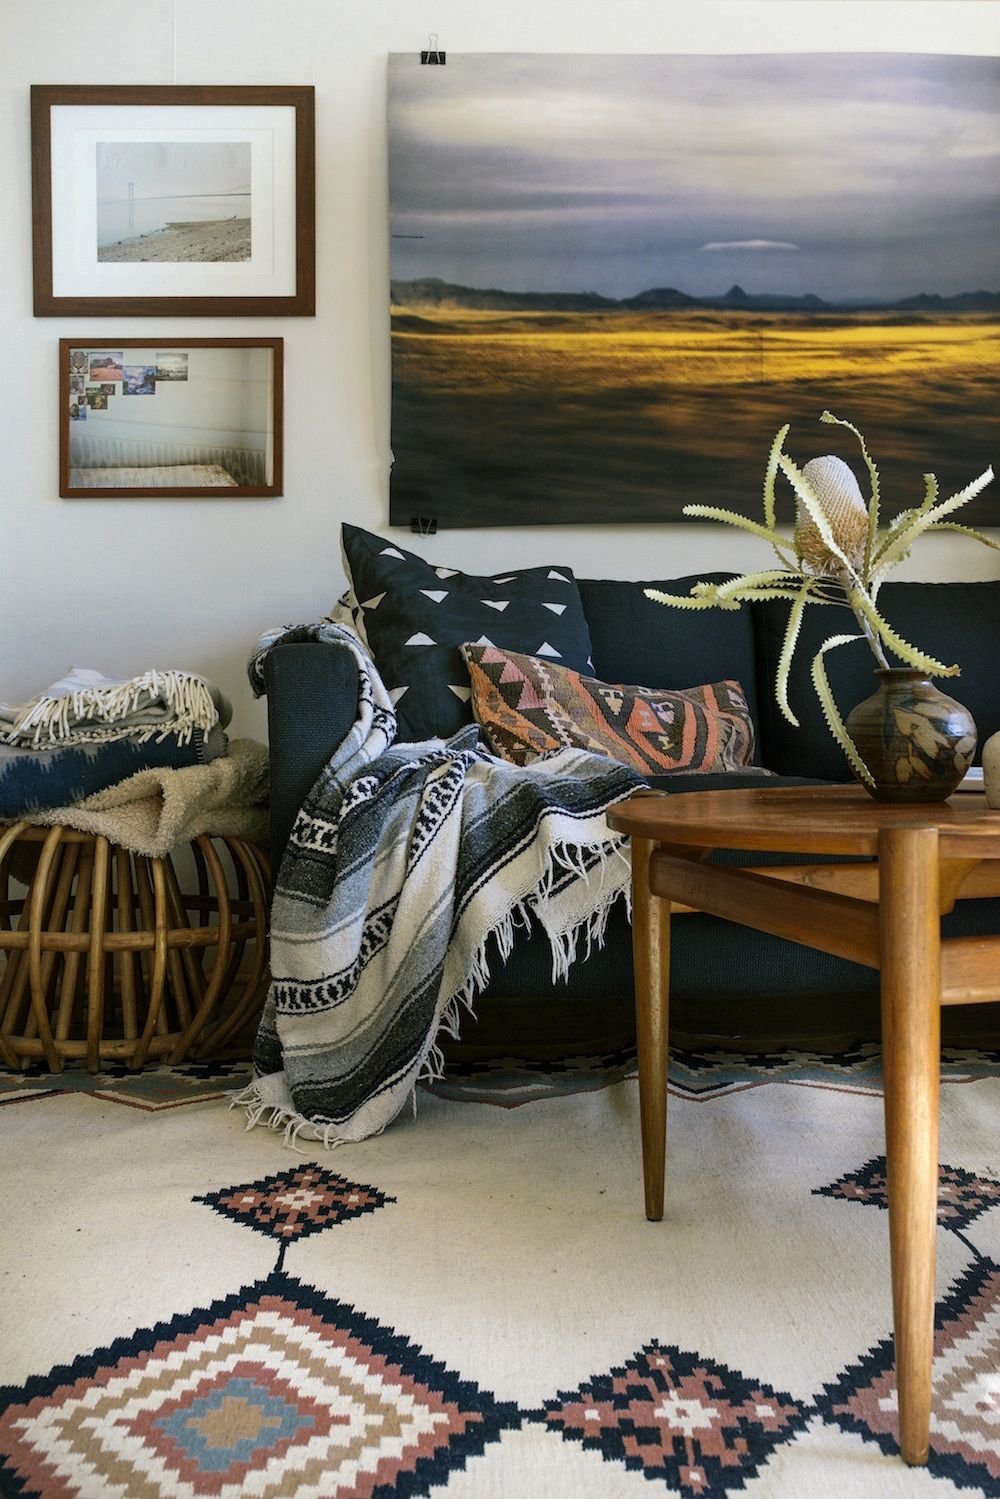 Home Of Photographer Nicolette Johnson, Her Partner Tom, And Their Cat Lola  // Mid Century + Found Objects + Warm + Earty